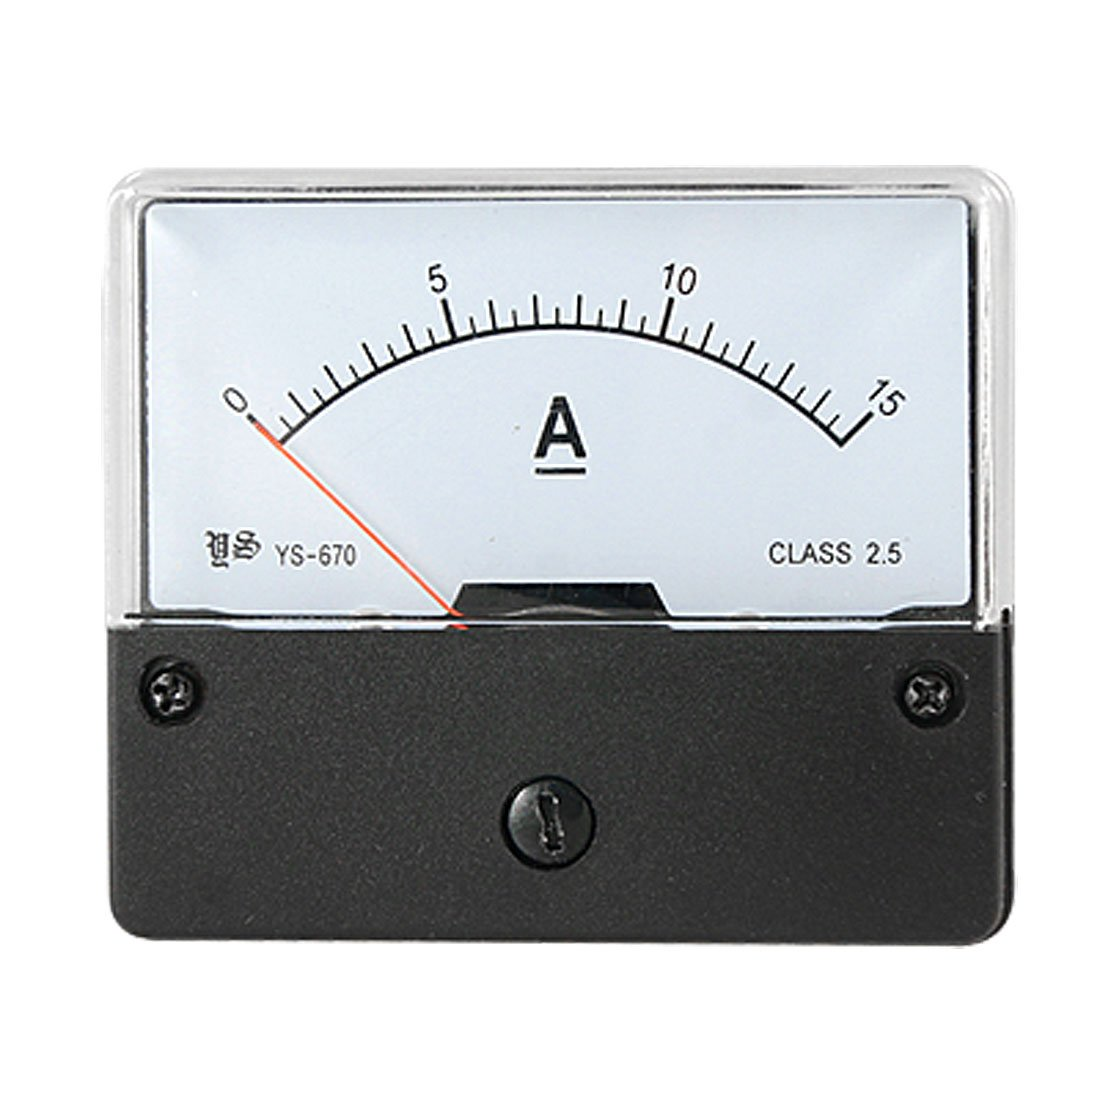 5 Pcs Wholesale DC 0-15A Current Range Panel Mount Ampere Meter Gauge<br><br>Aliexpress